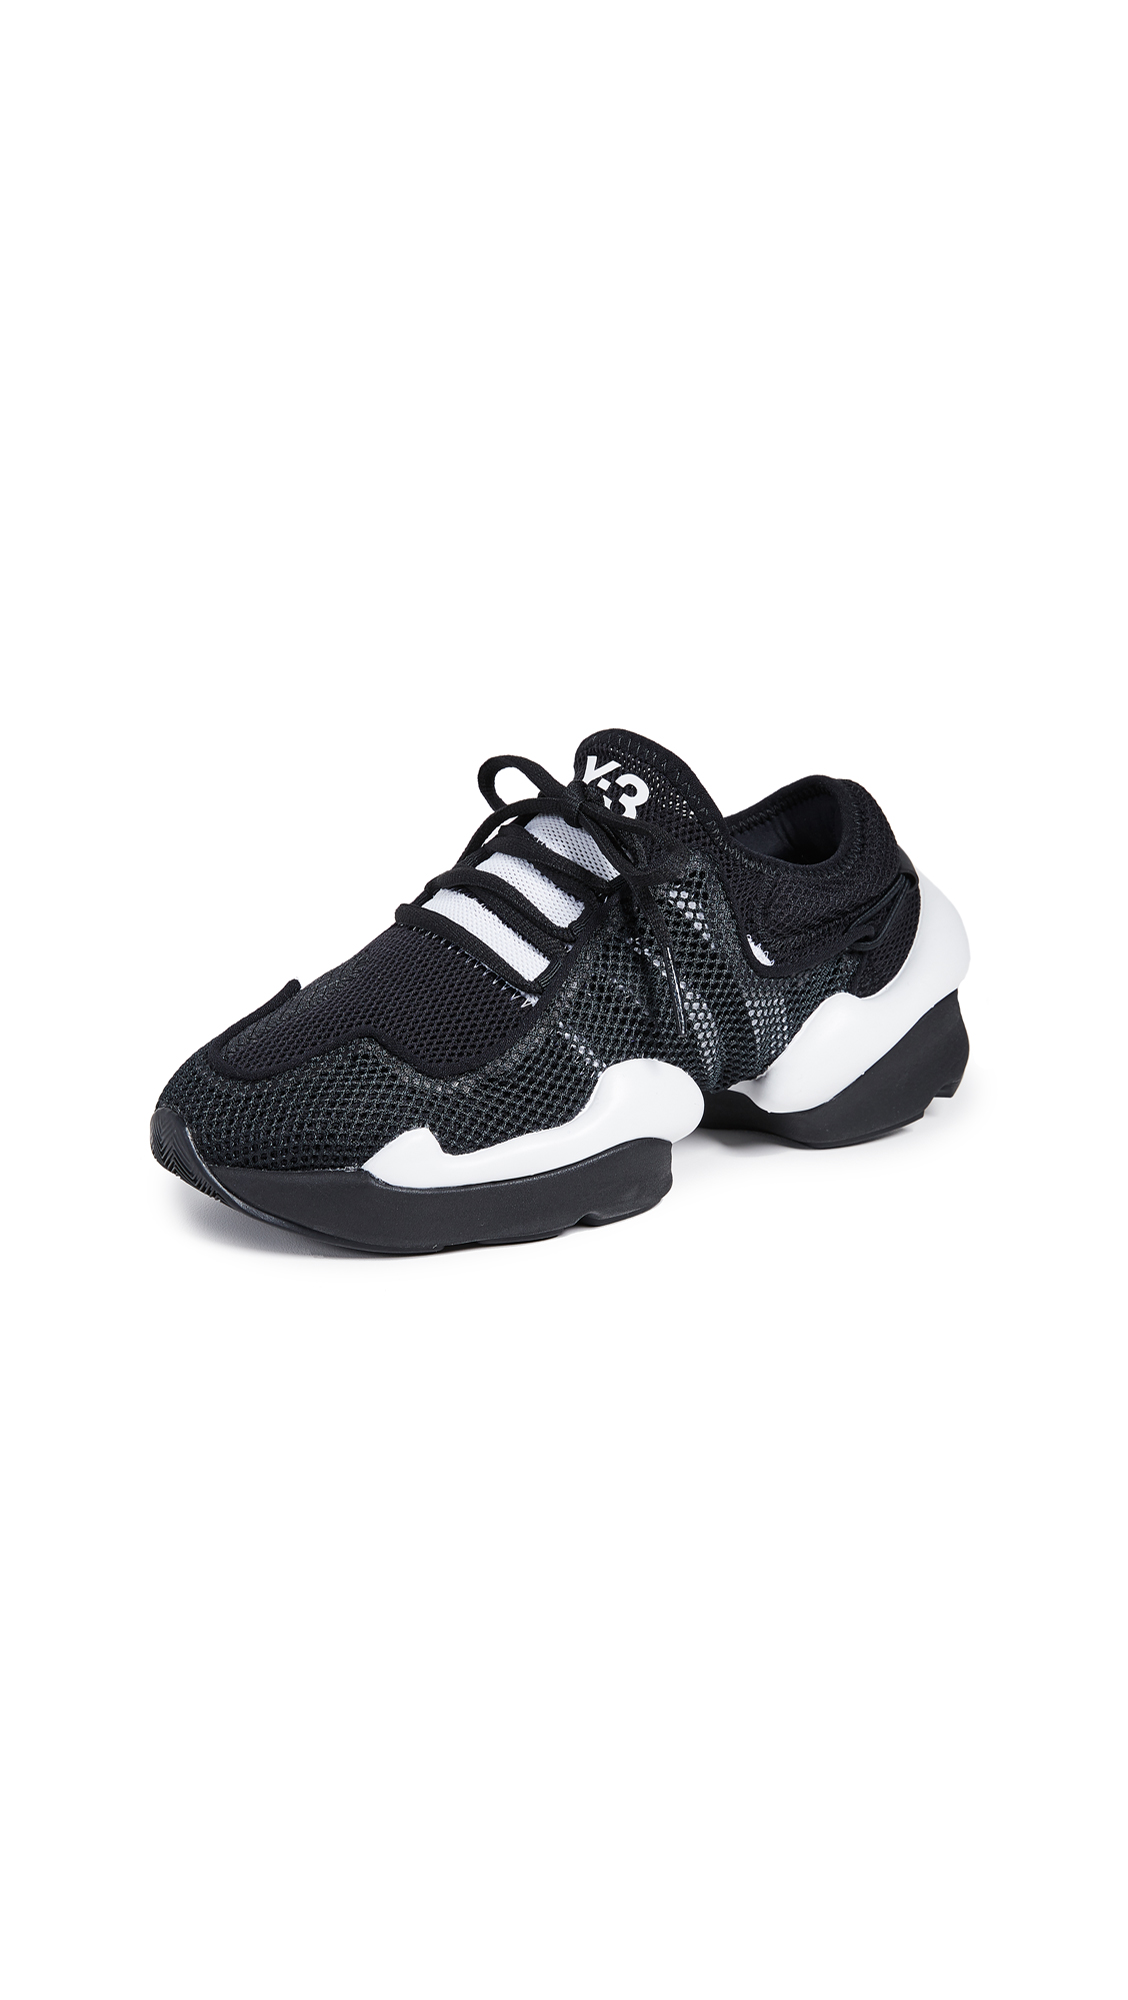 Y-3 Y-3 Ren Sneakers - Core Black/Black/White